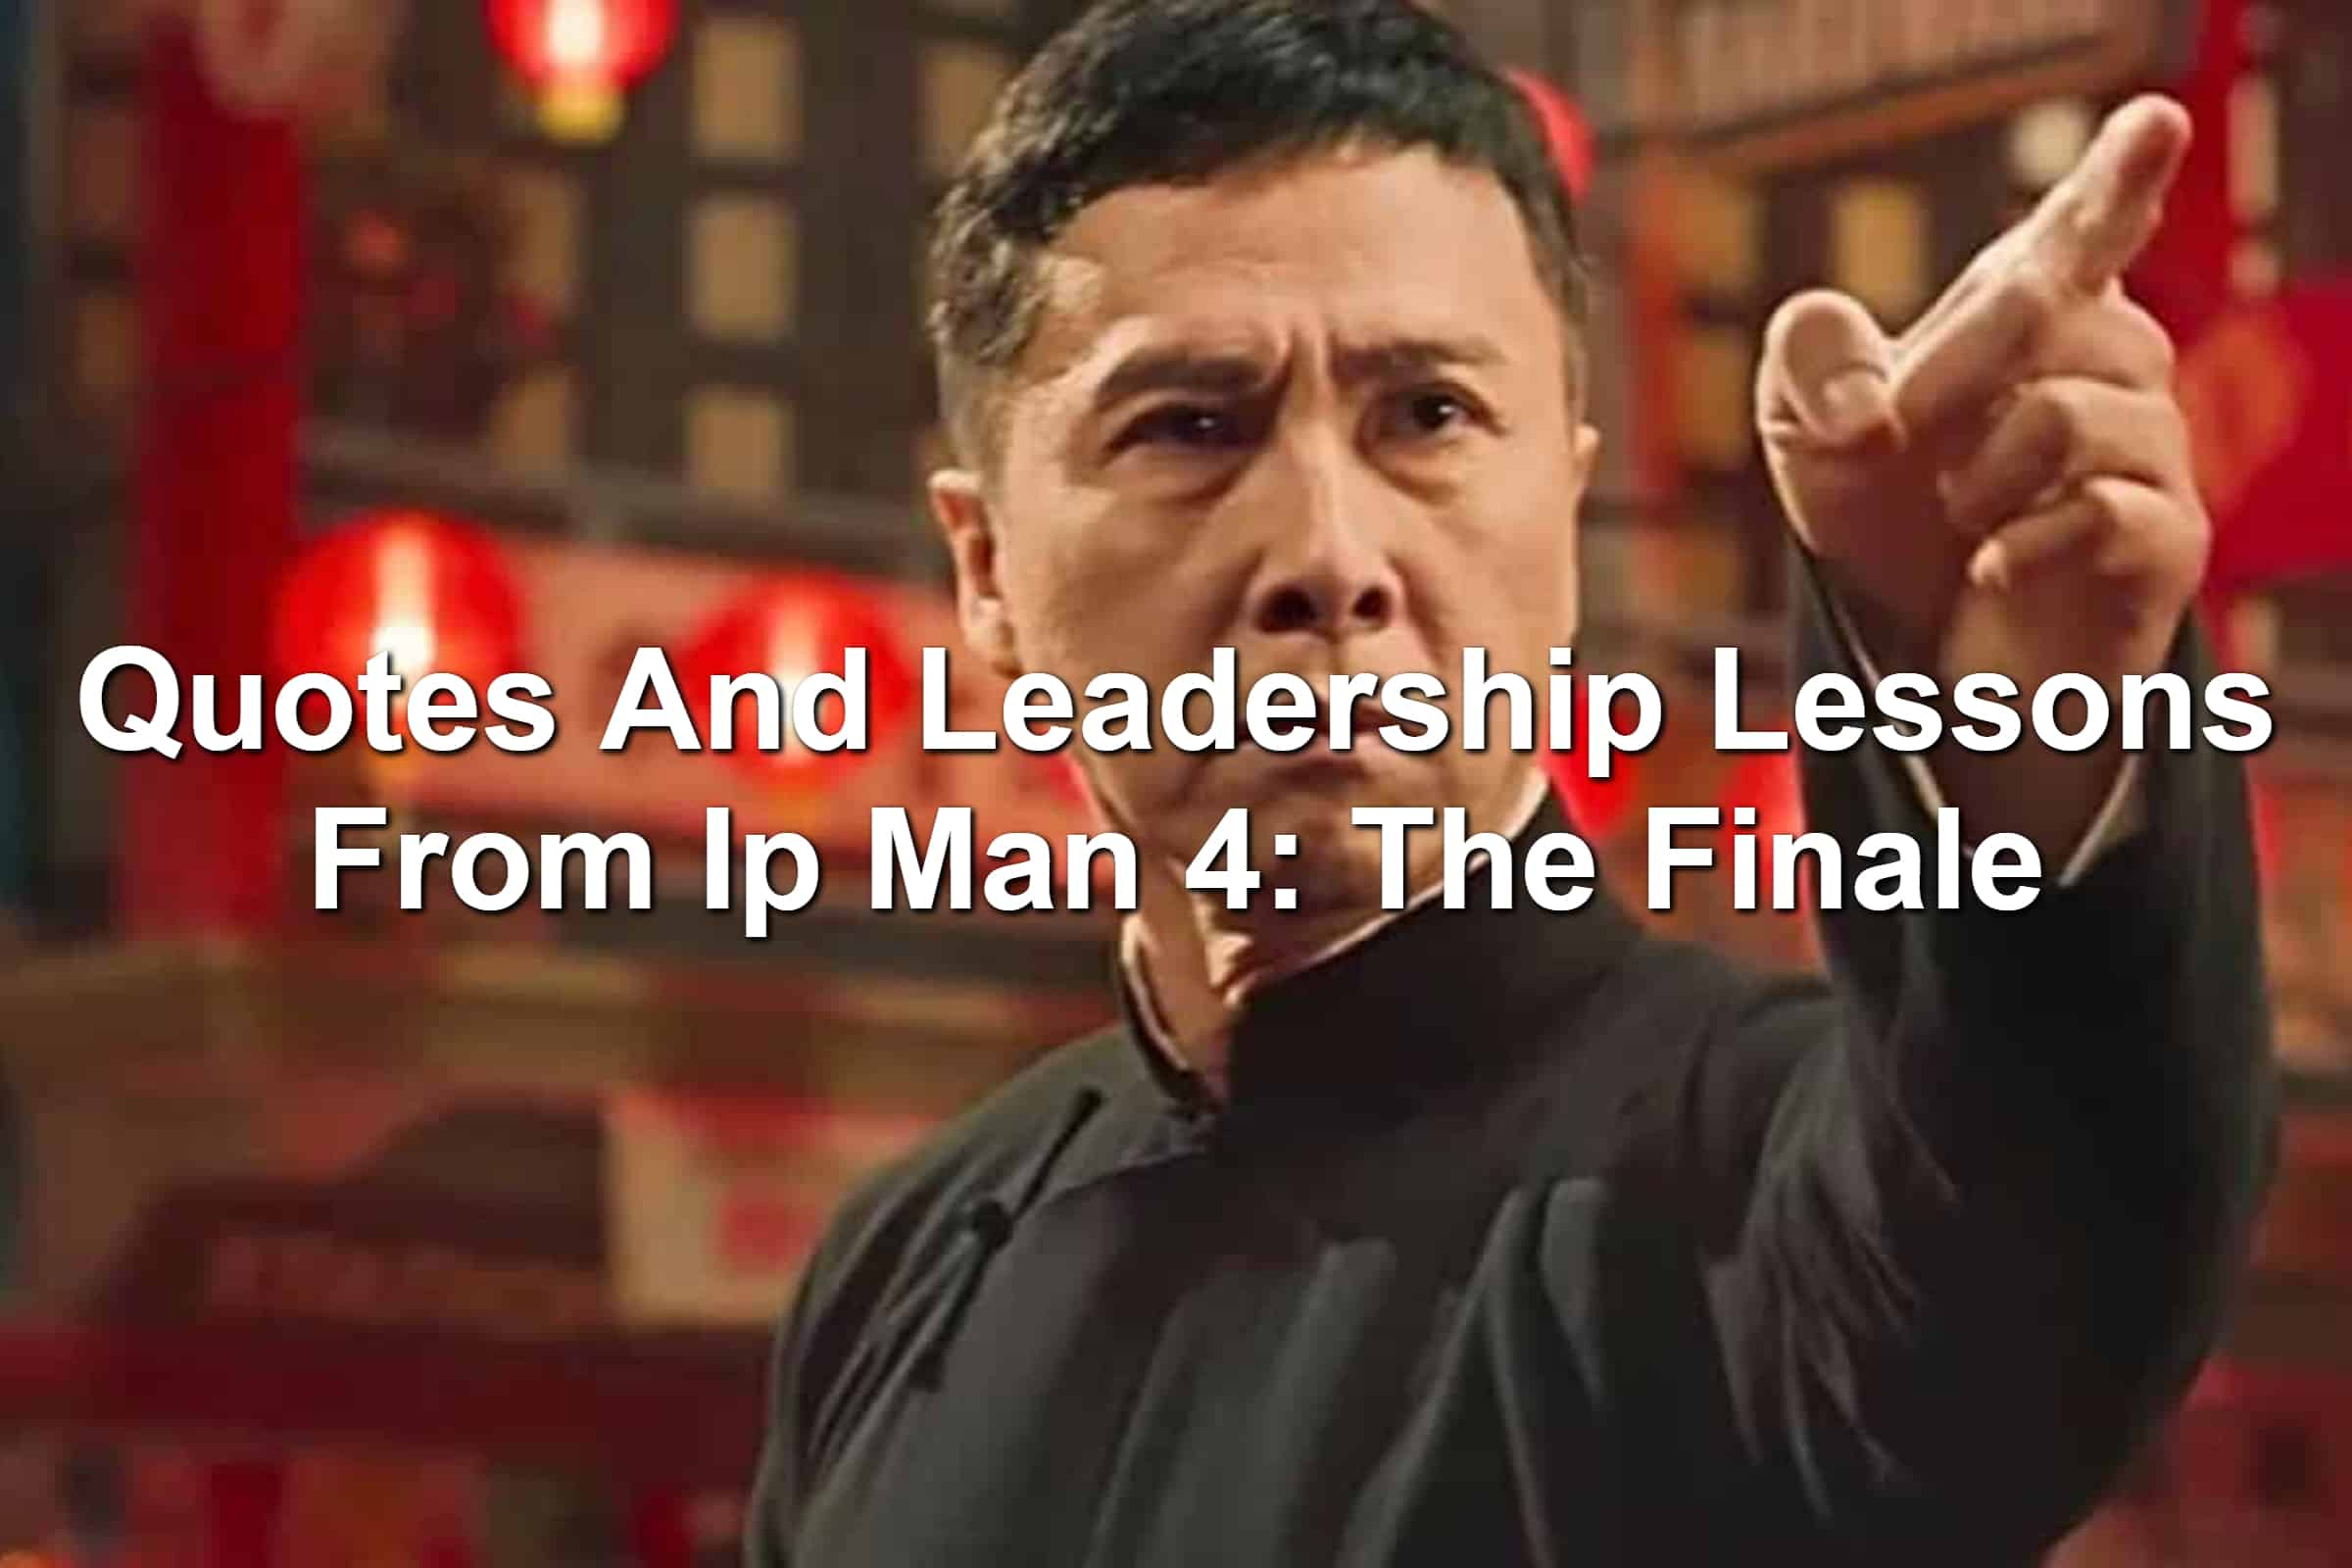 Donnie Yen as Ip Man in Ip Man 4: The Finale. Pointing finger.